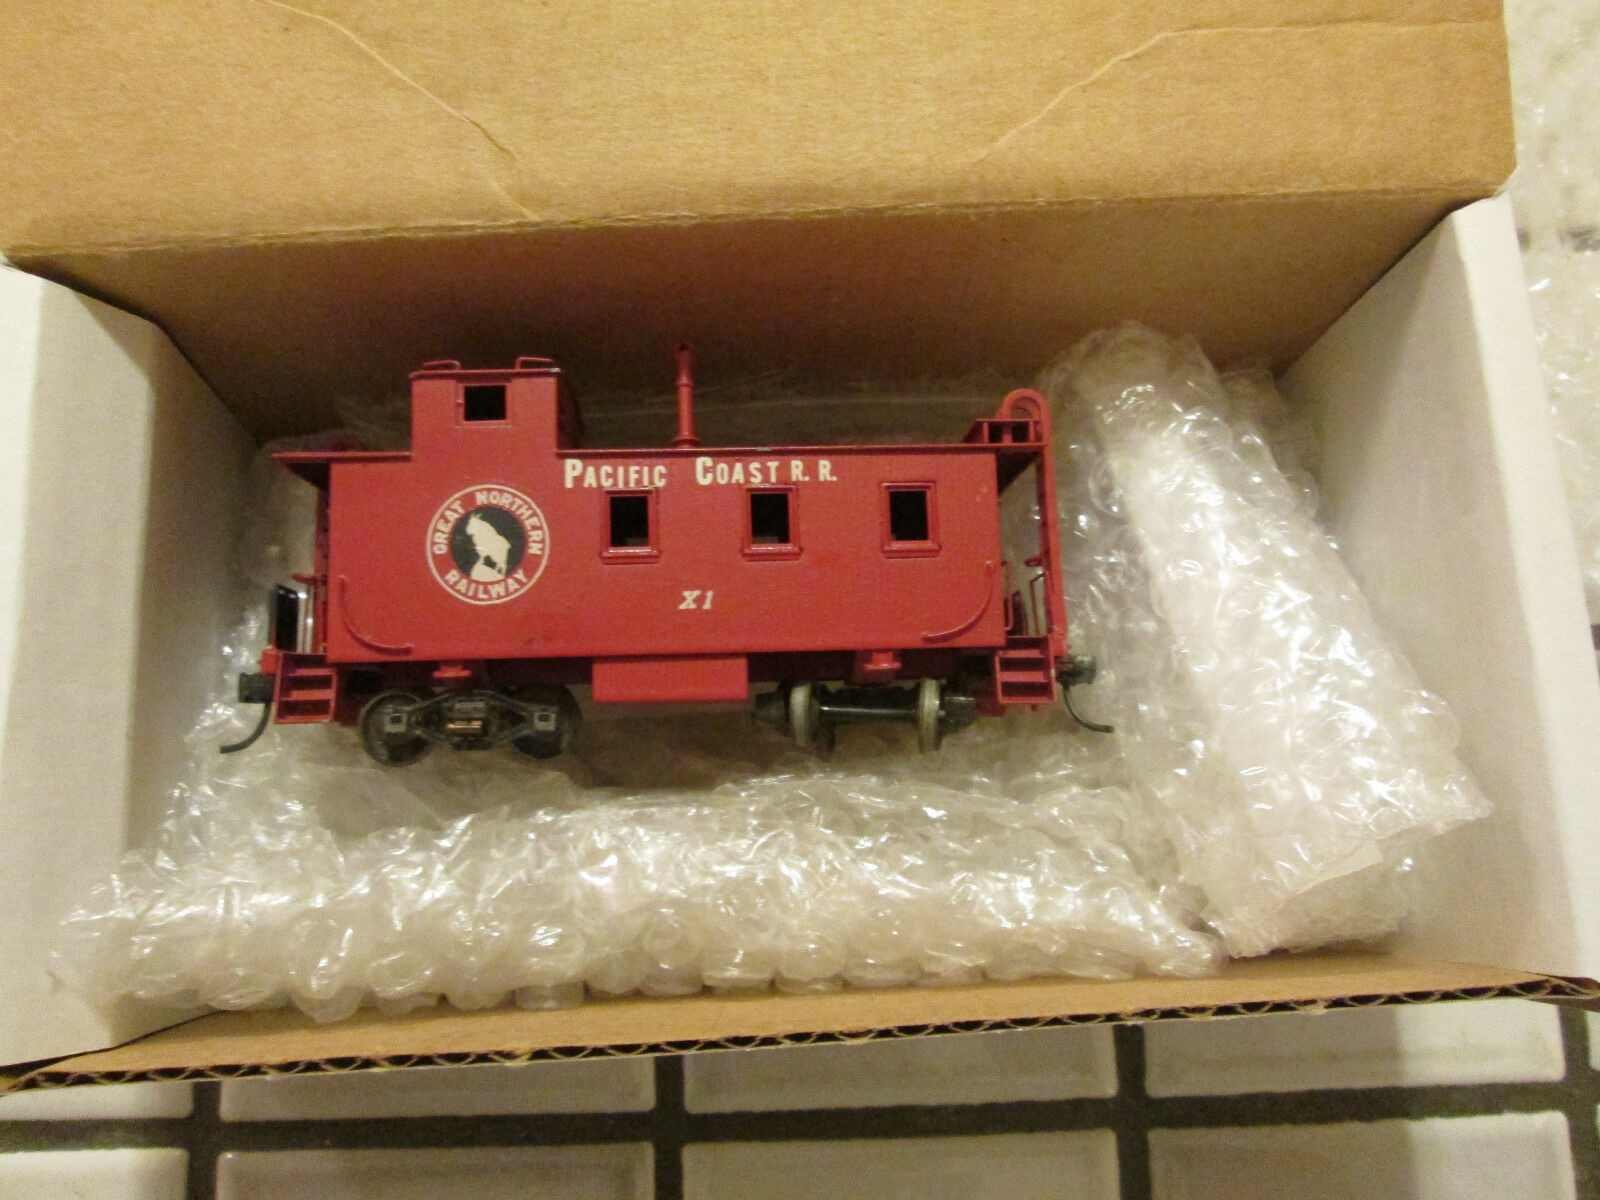 PACIFIC COAST-GREAT NORTHERN brass caboose car HO scale